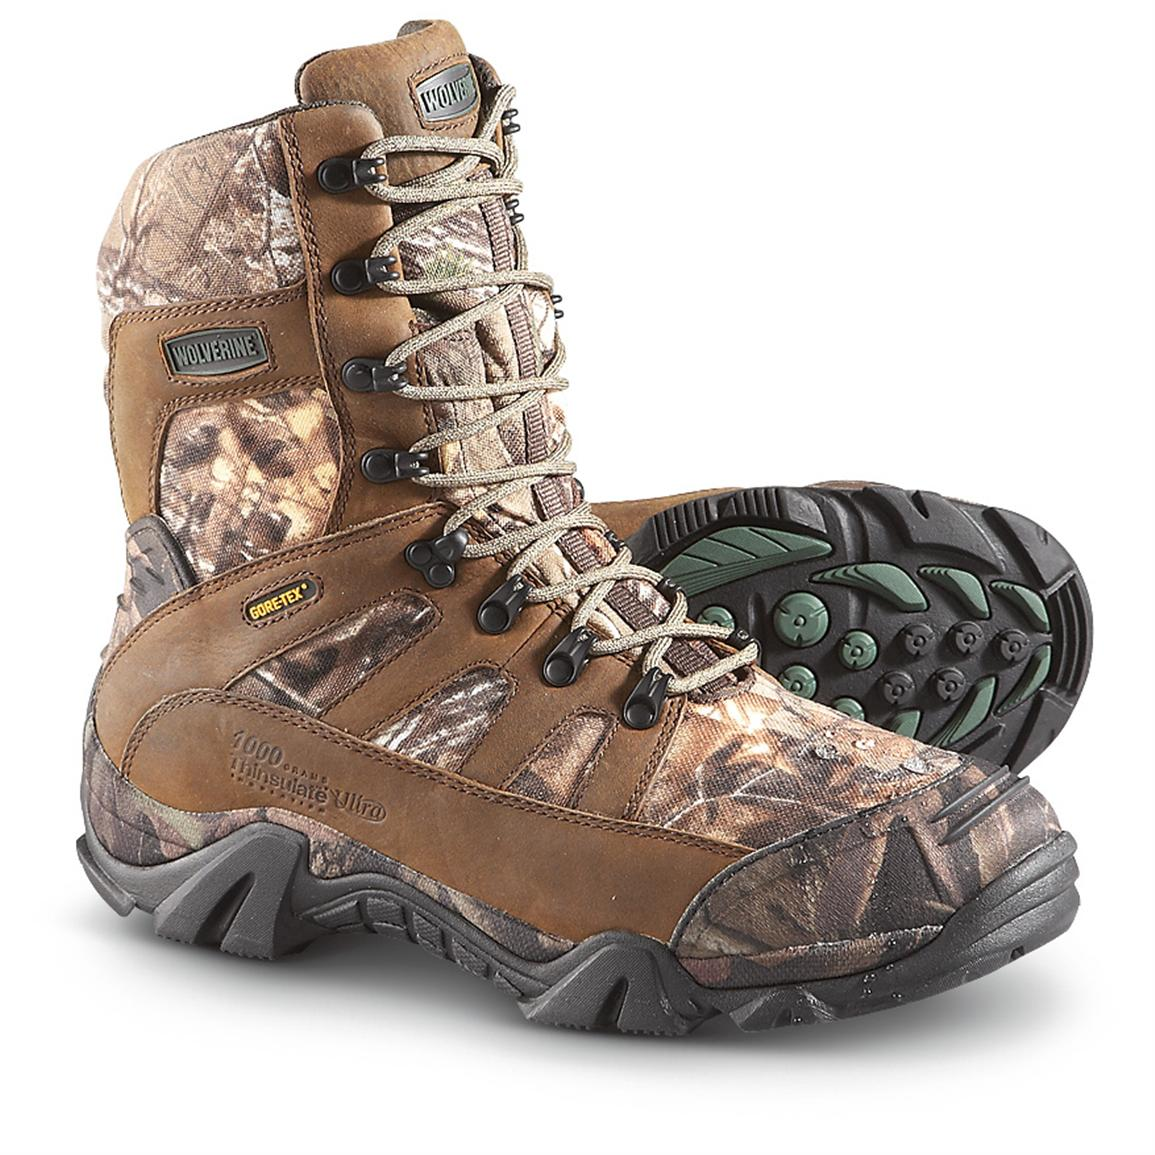 Men's Wolverine® Ridgeline Xtreme 1,000 Gram Thinsulate™ Ultra Insulation GORE-TEX® Boots, Realtree® Xtra